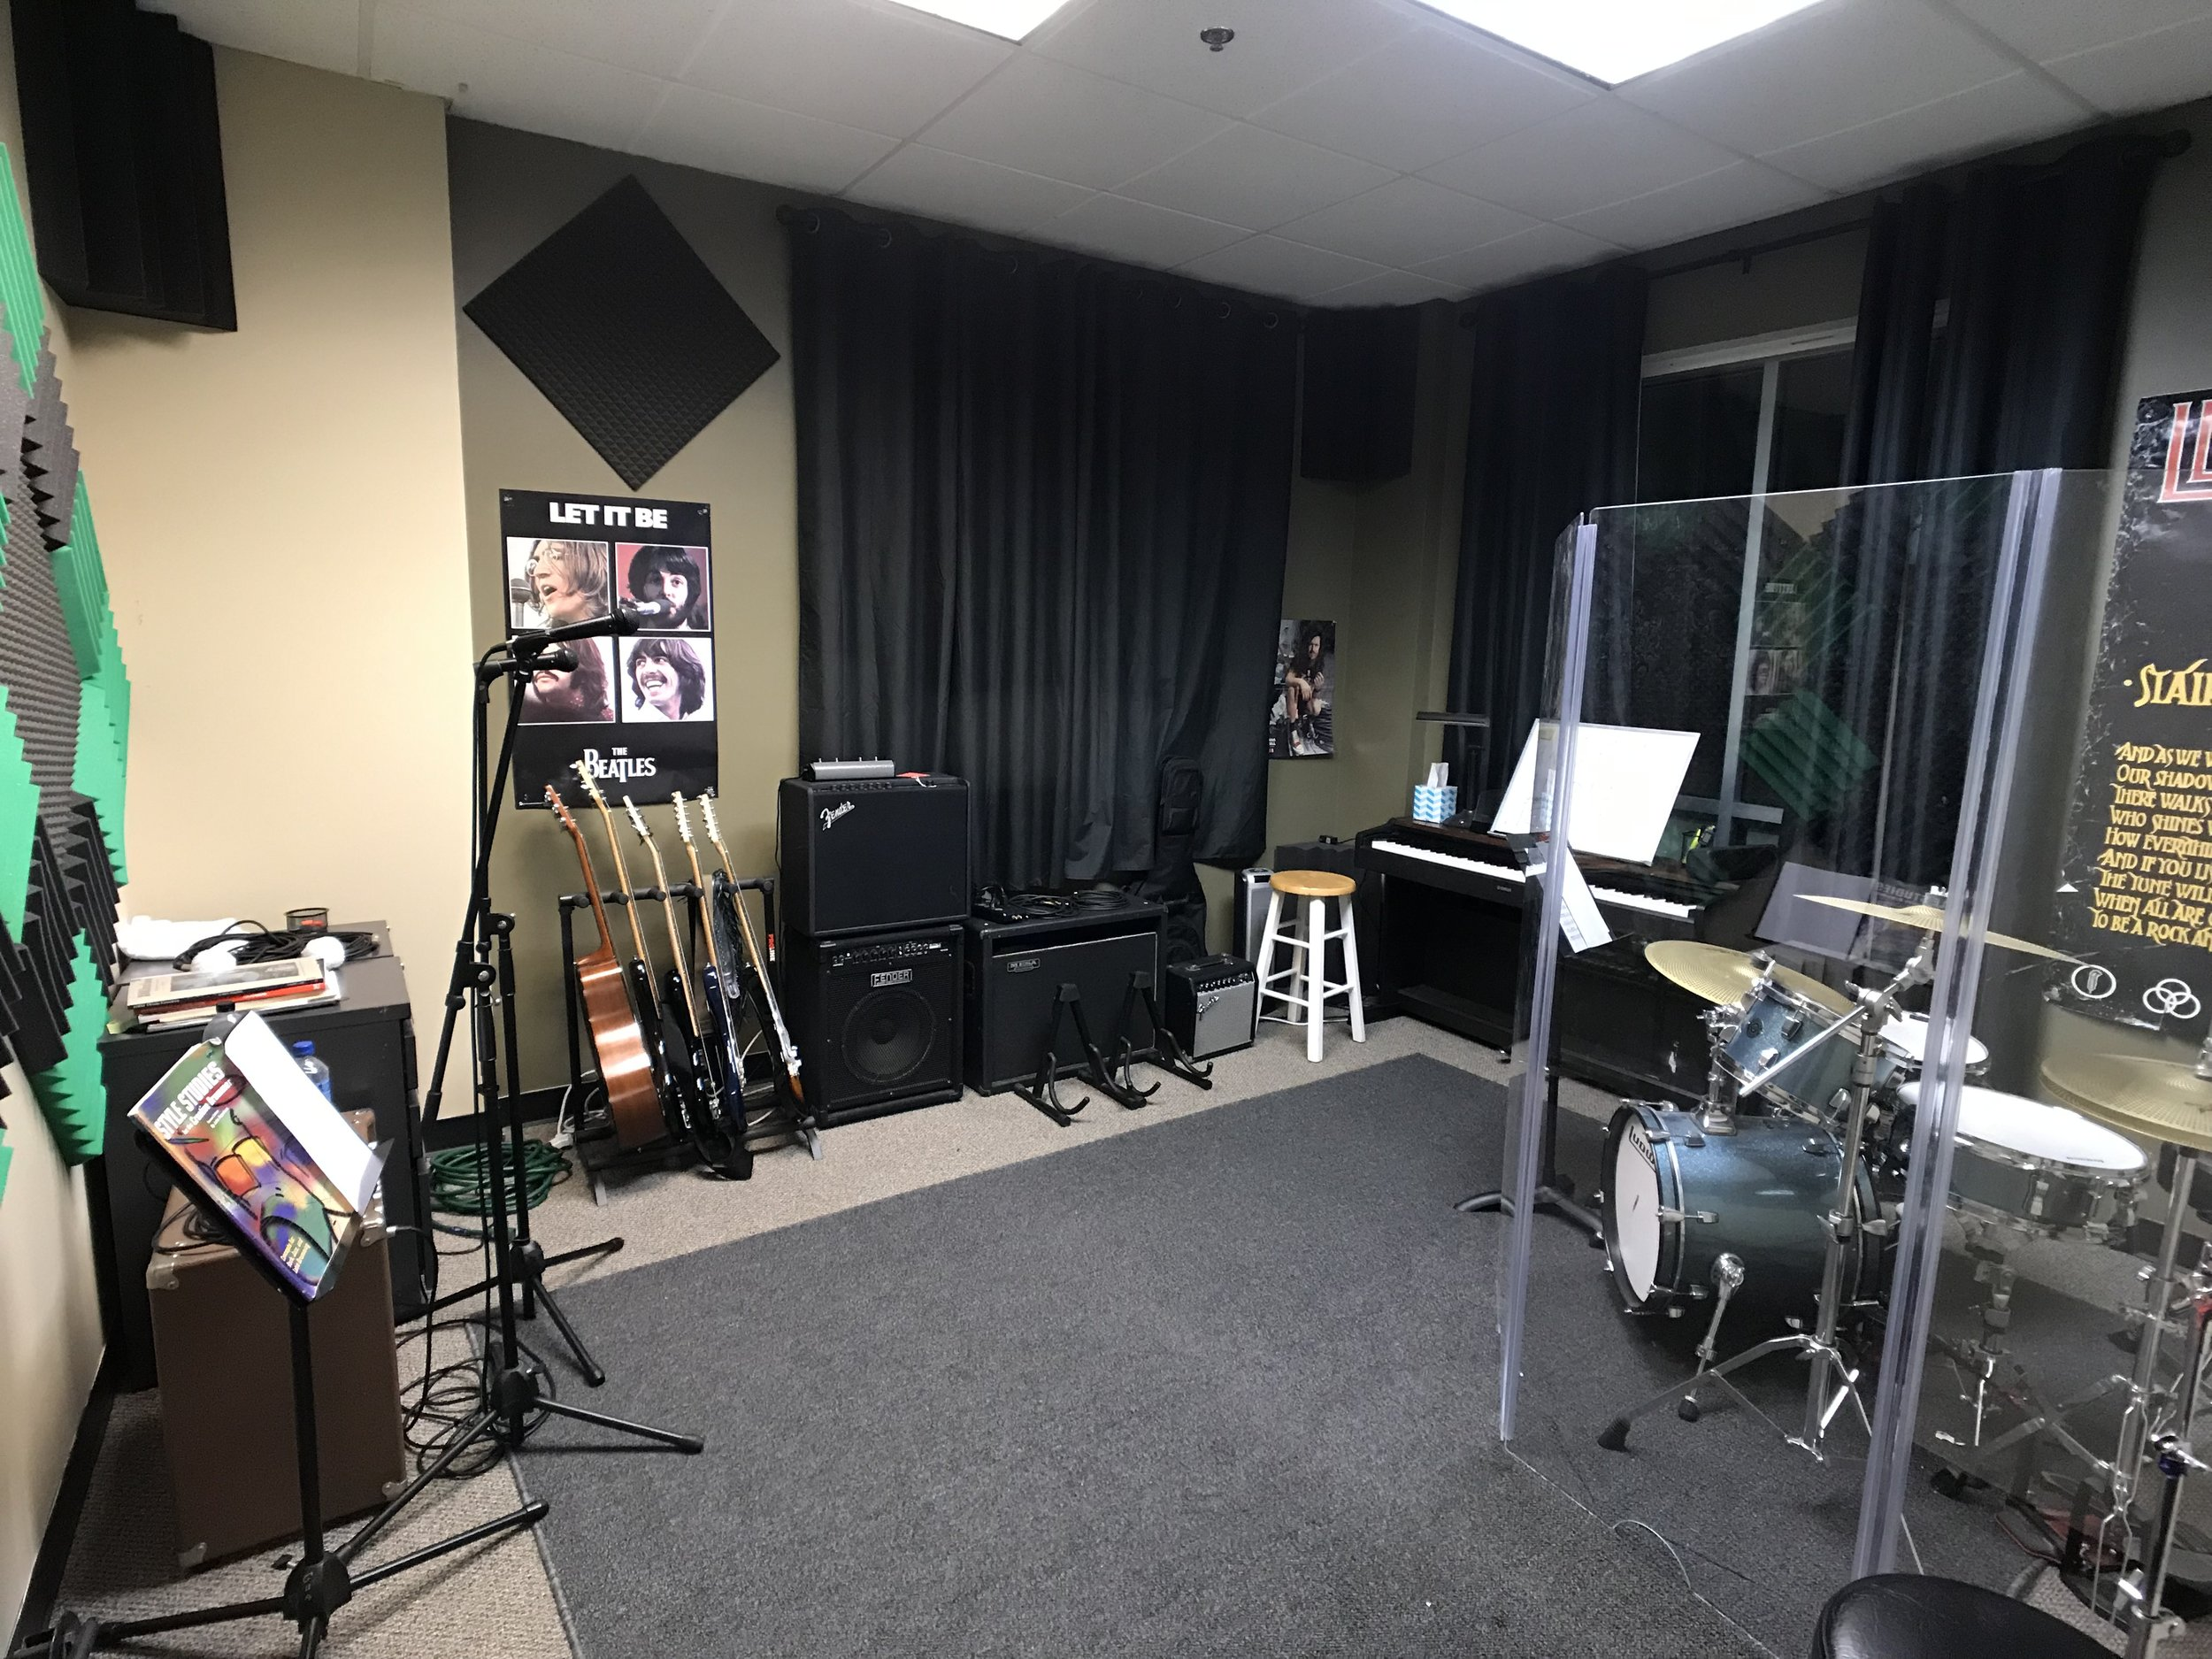 Let there be rock - Spacious teaching rooms equipped with top of the line gear.Avoid any distractions of home and the outside world where you can forget everything and focus on your music.